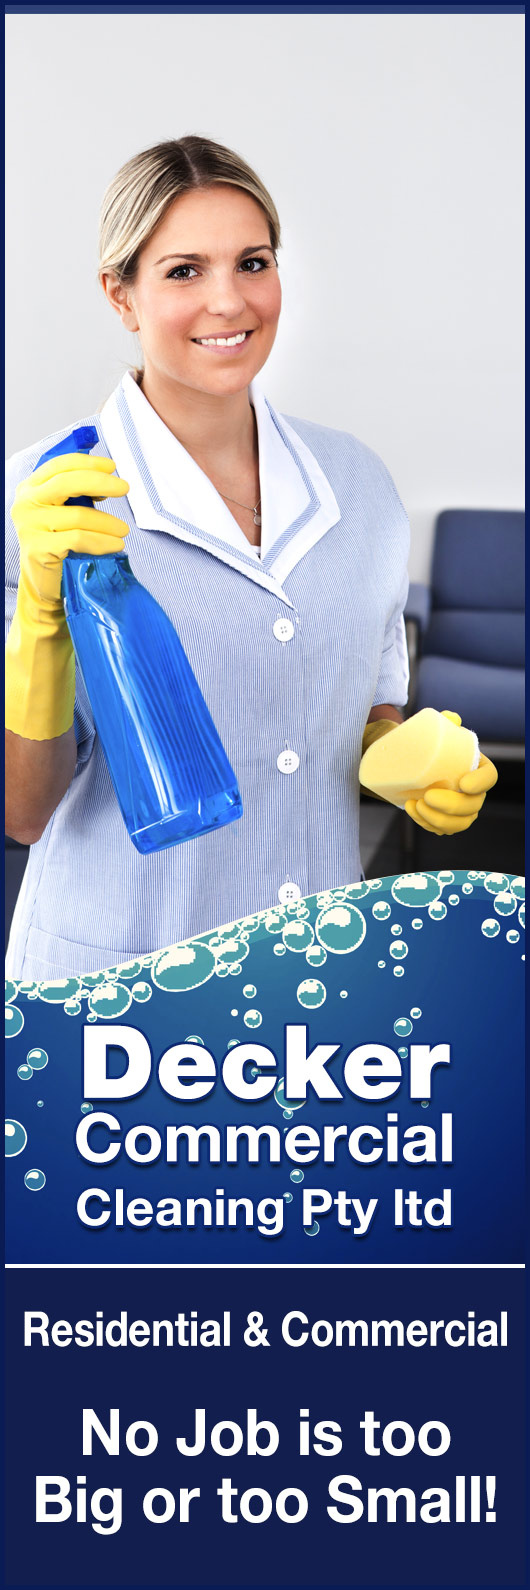 Decker commercial cleaning pty ltd promotion